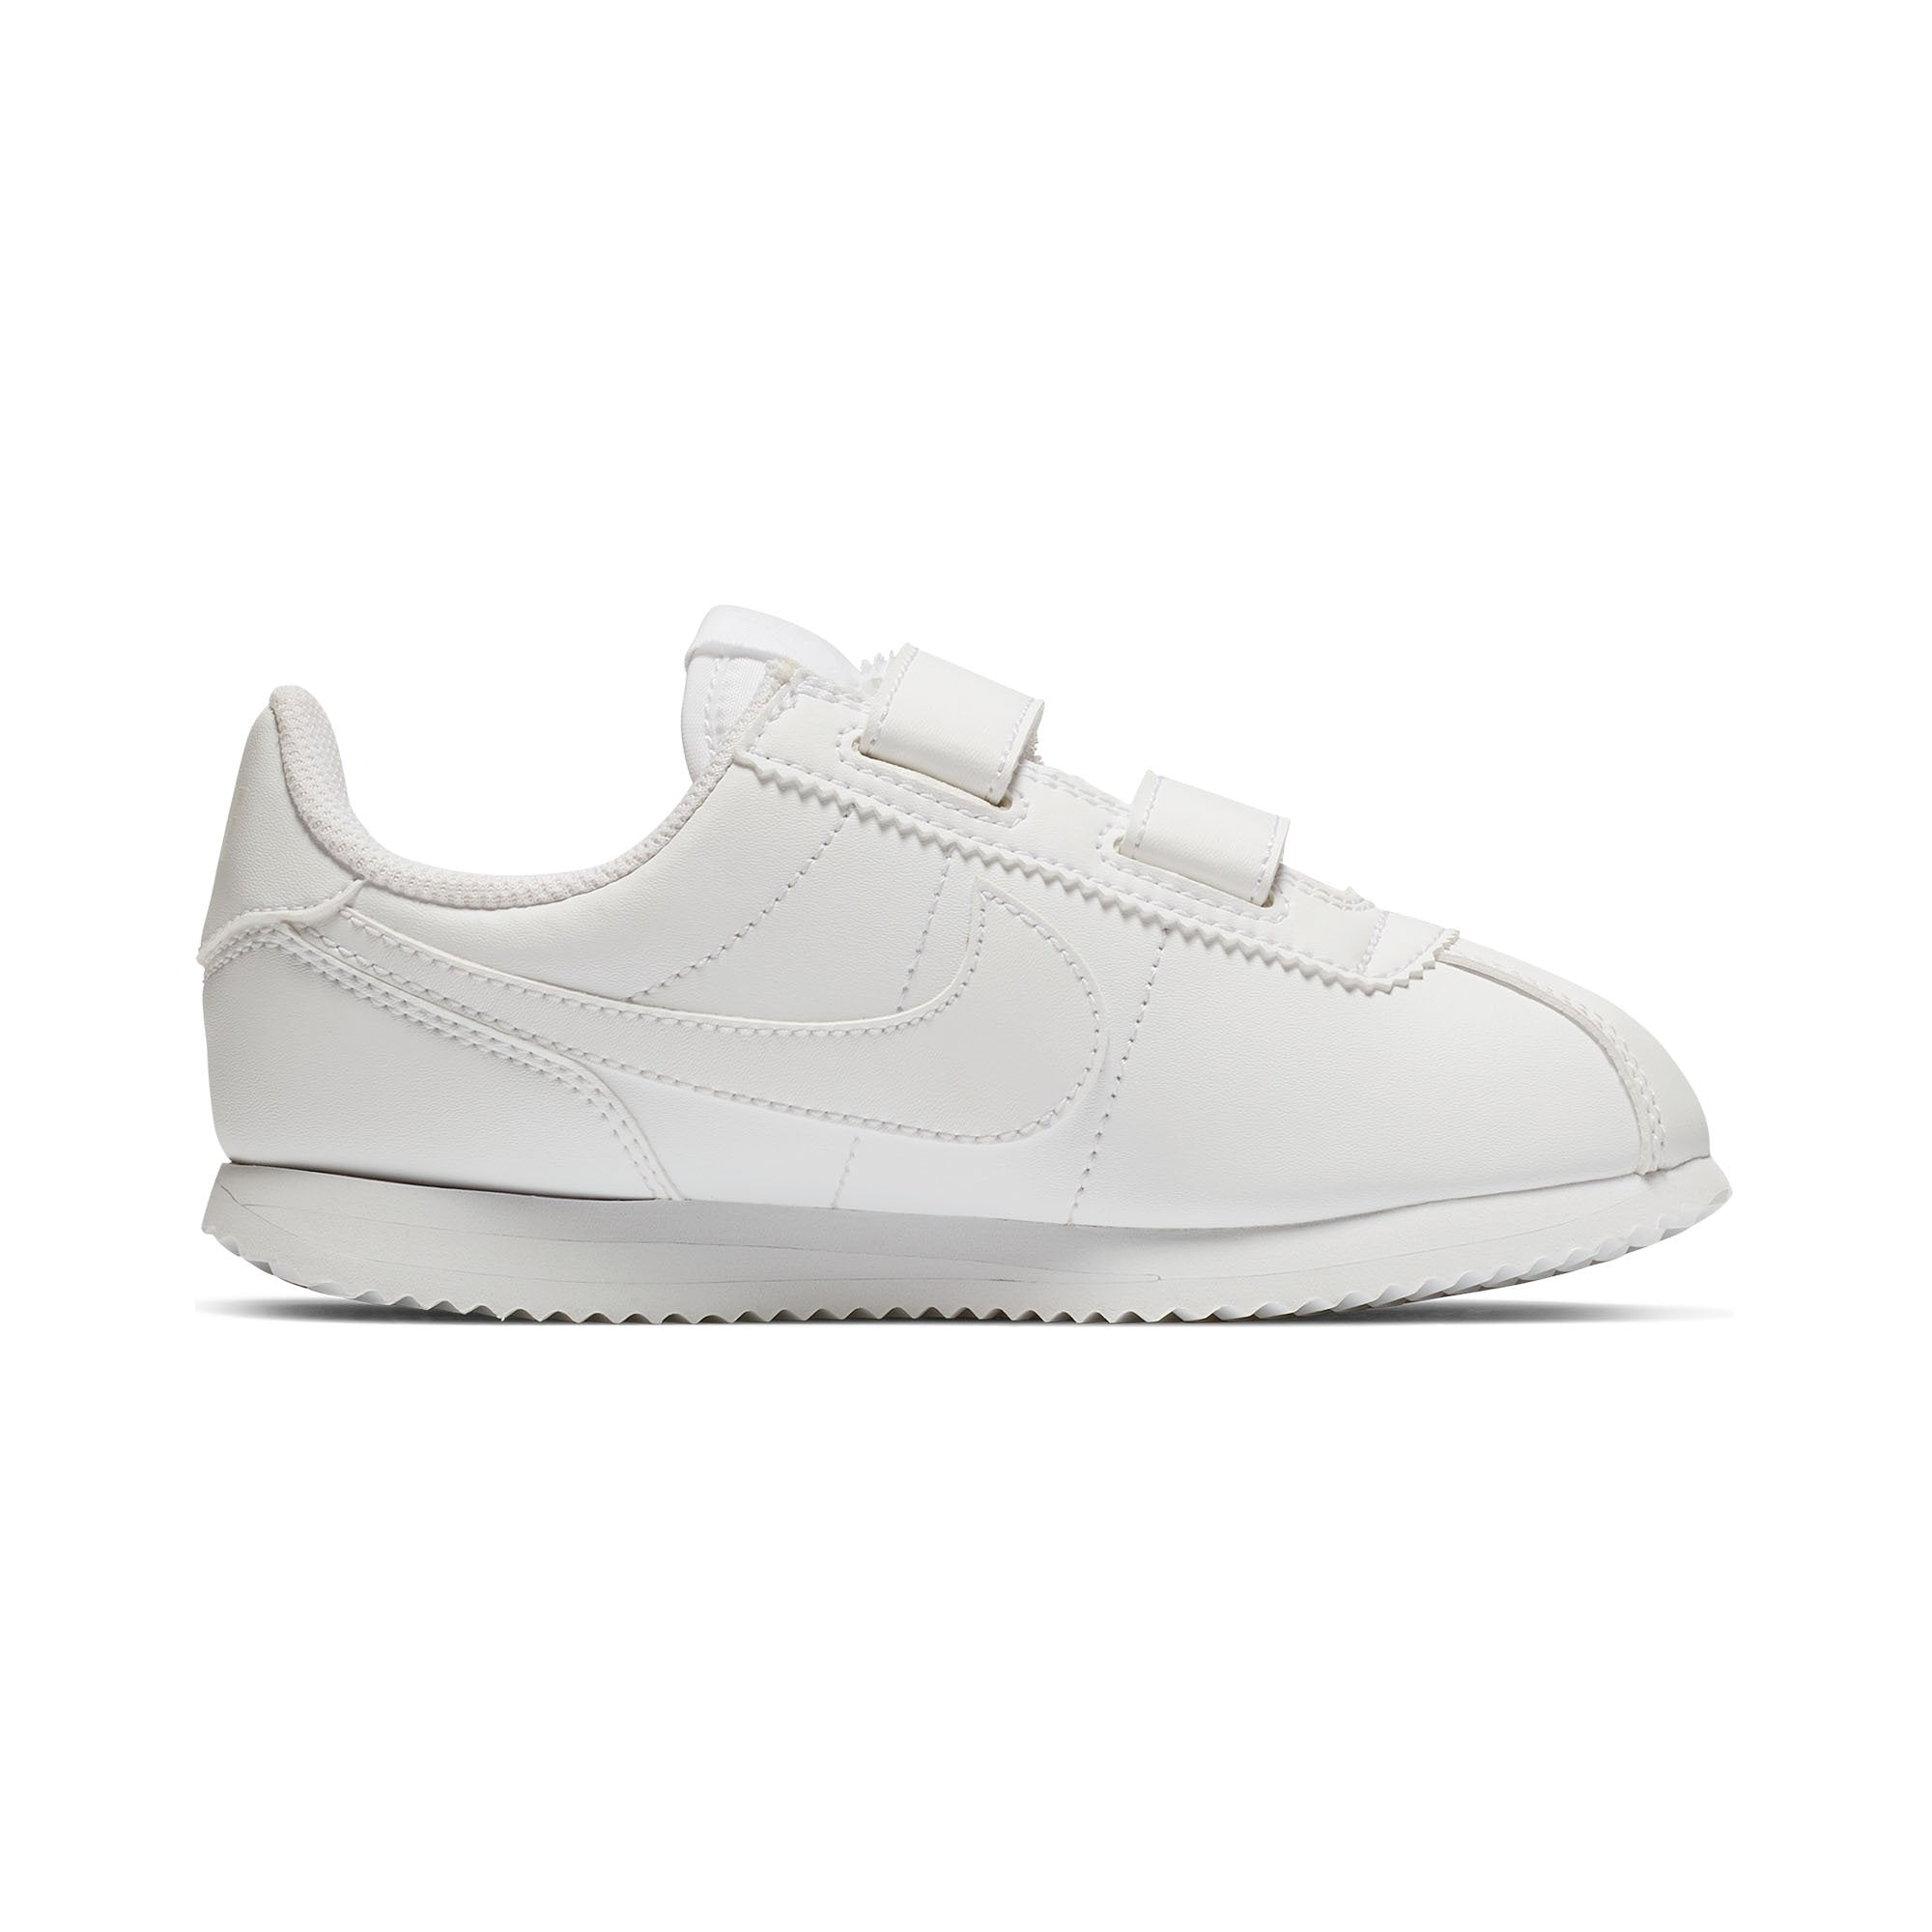 395675c51c63d0 Buy Nike Kids Cortez Basic Pre-School Shoes